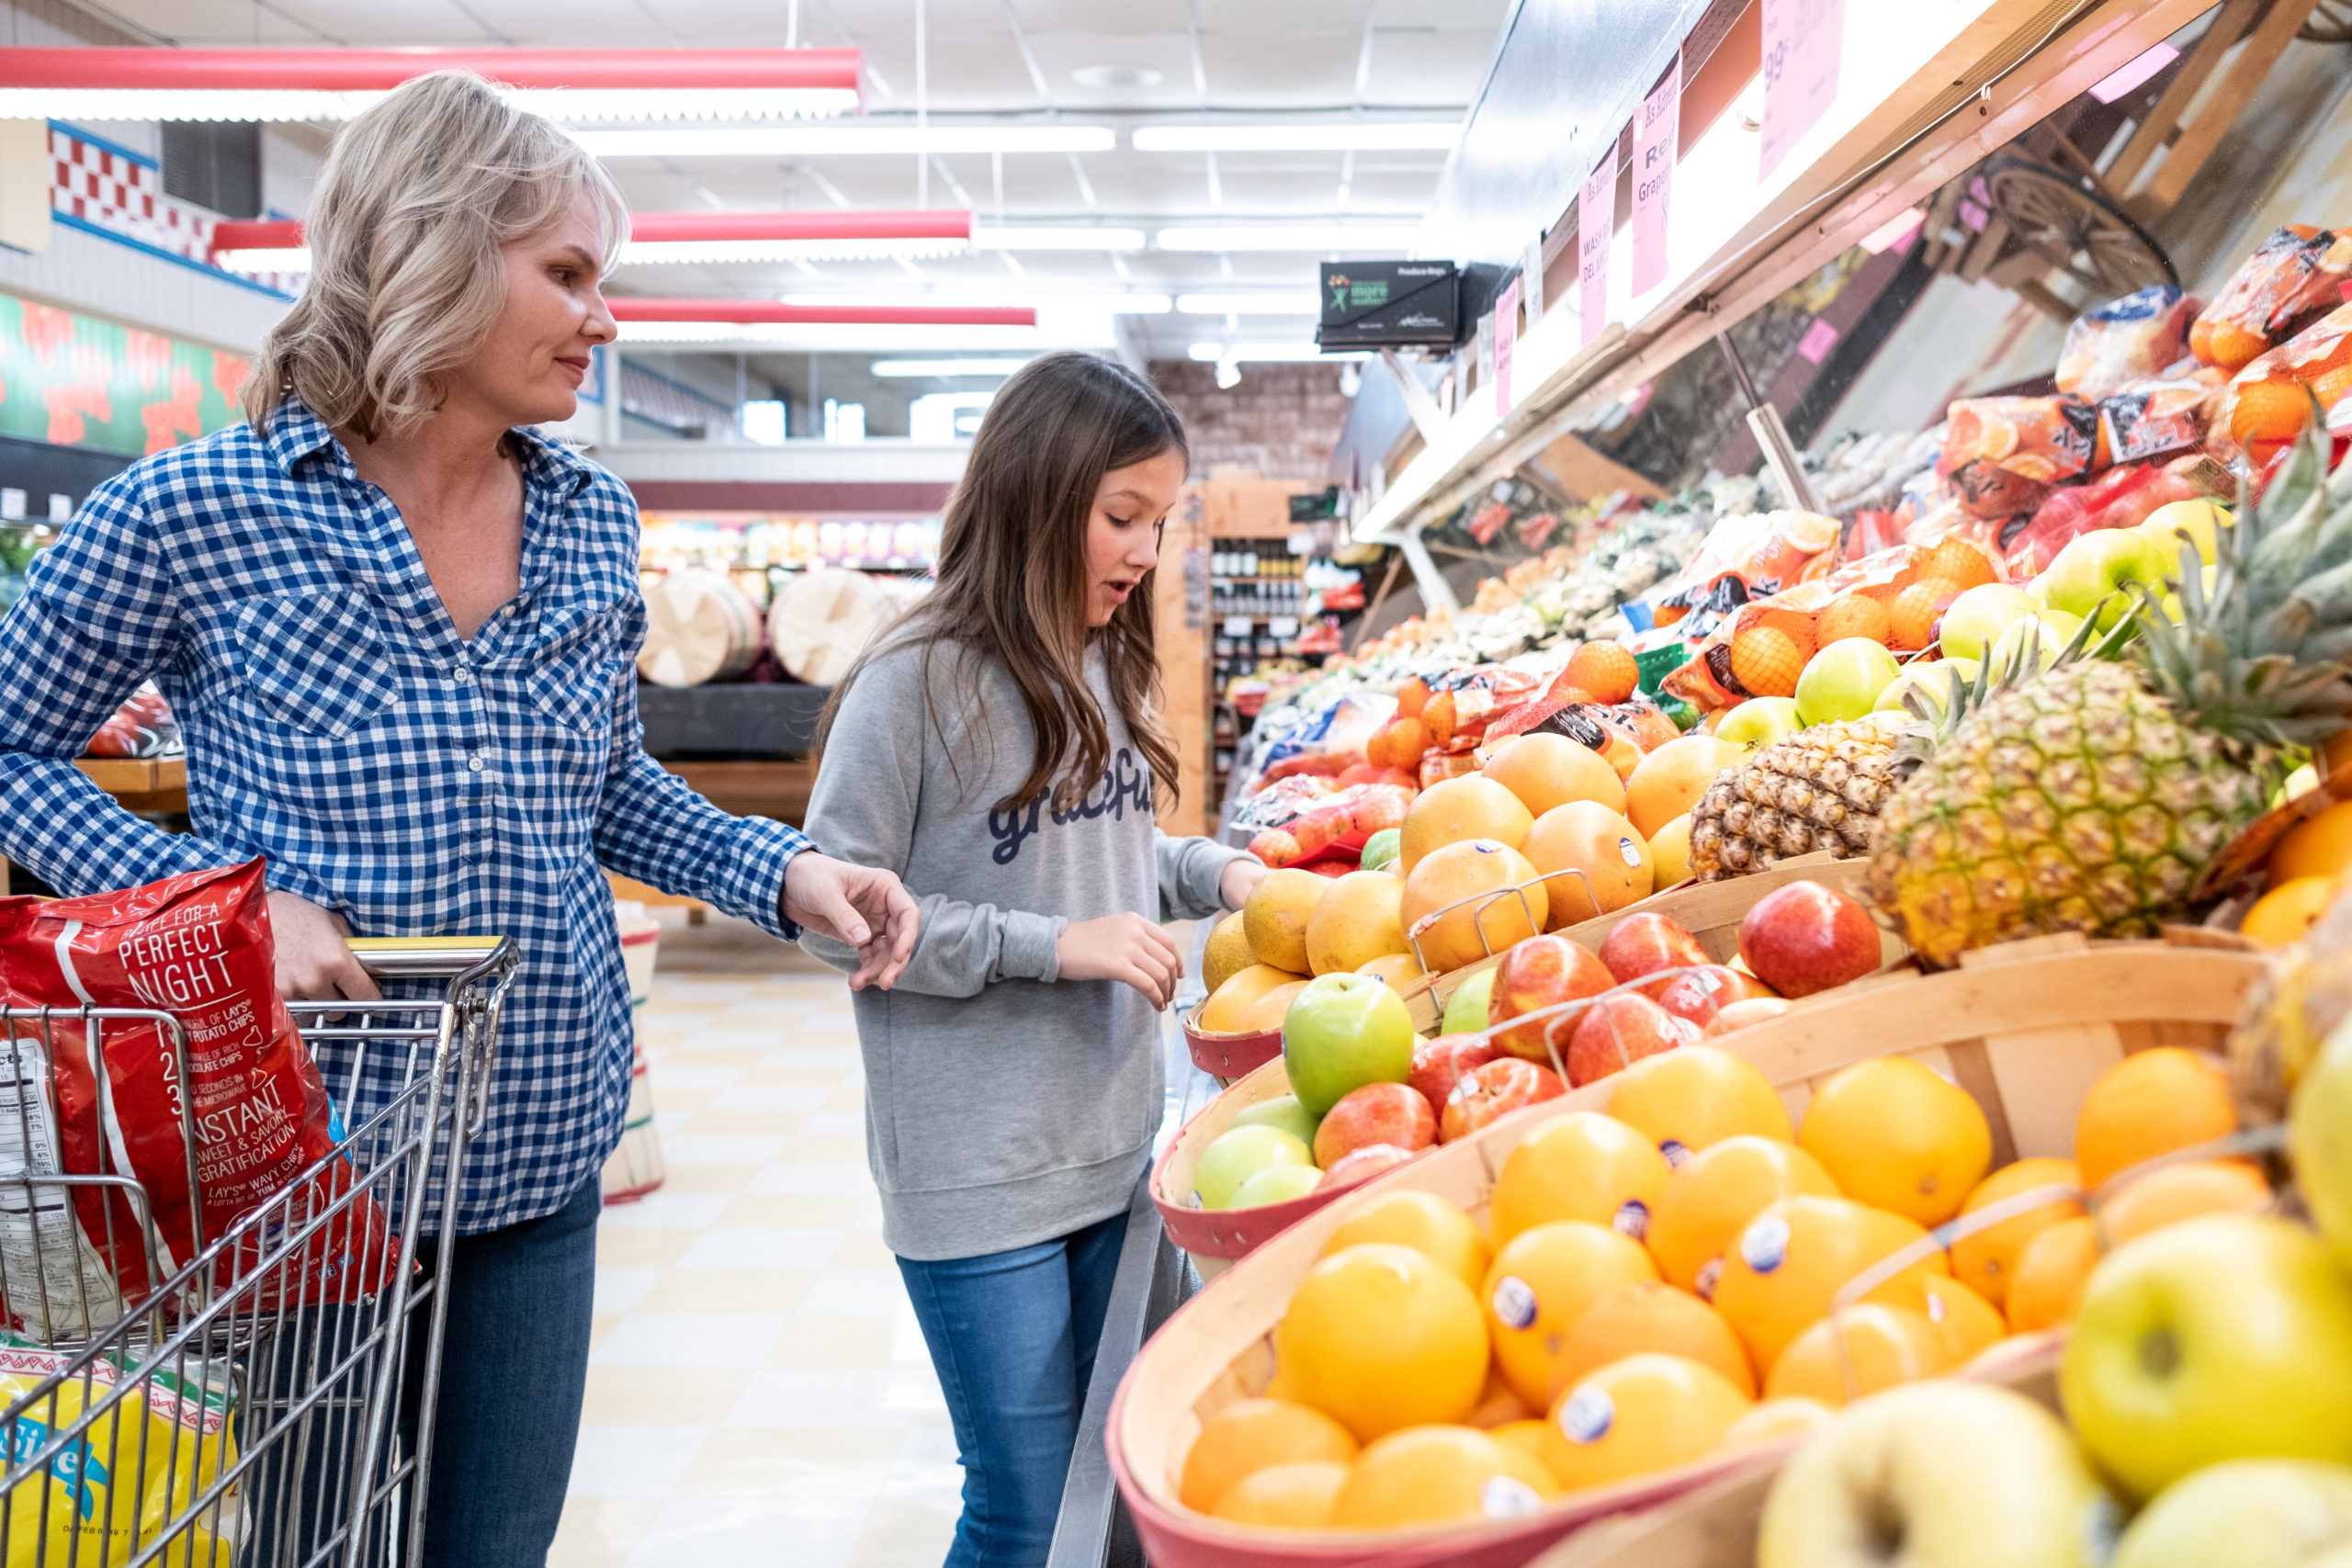 woman and girl at grocery store